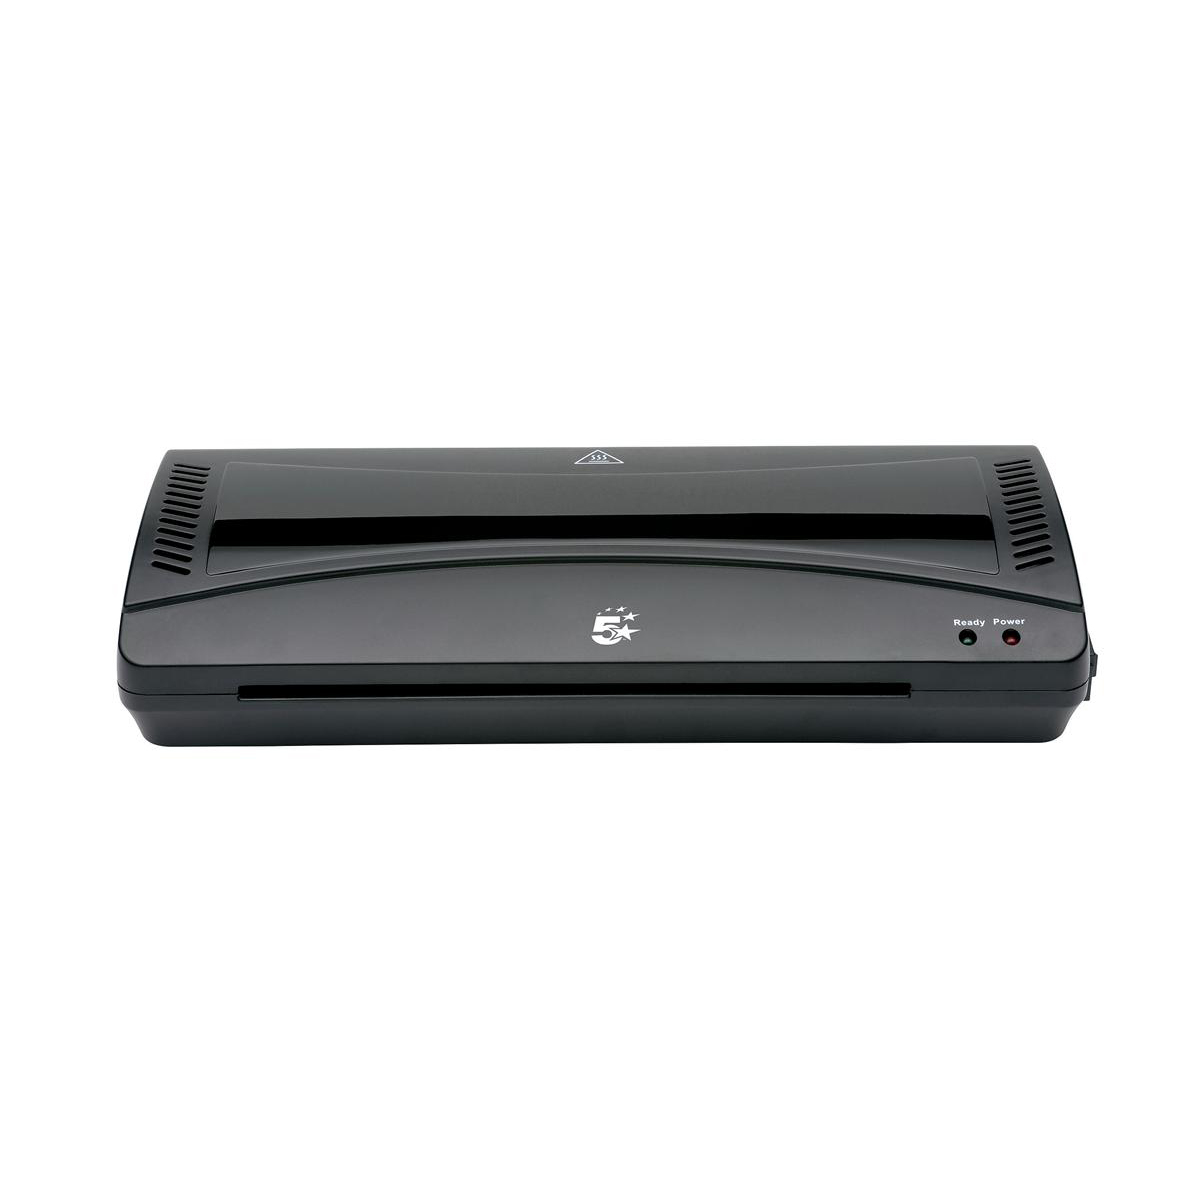 Laminating Machines 5 Star Office Hot and Cold A4 Laminator Up to 2x100micron Pouches